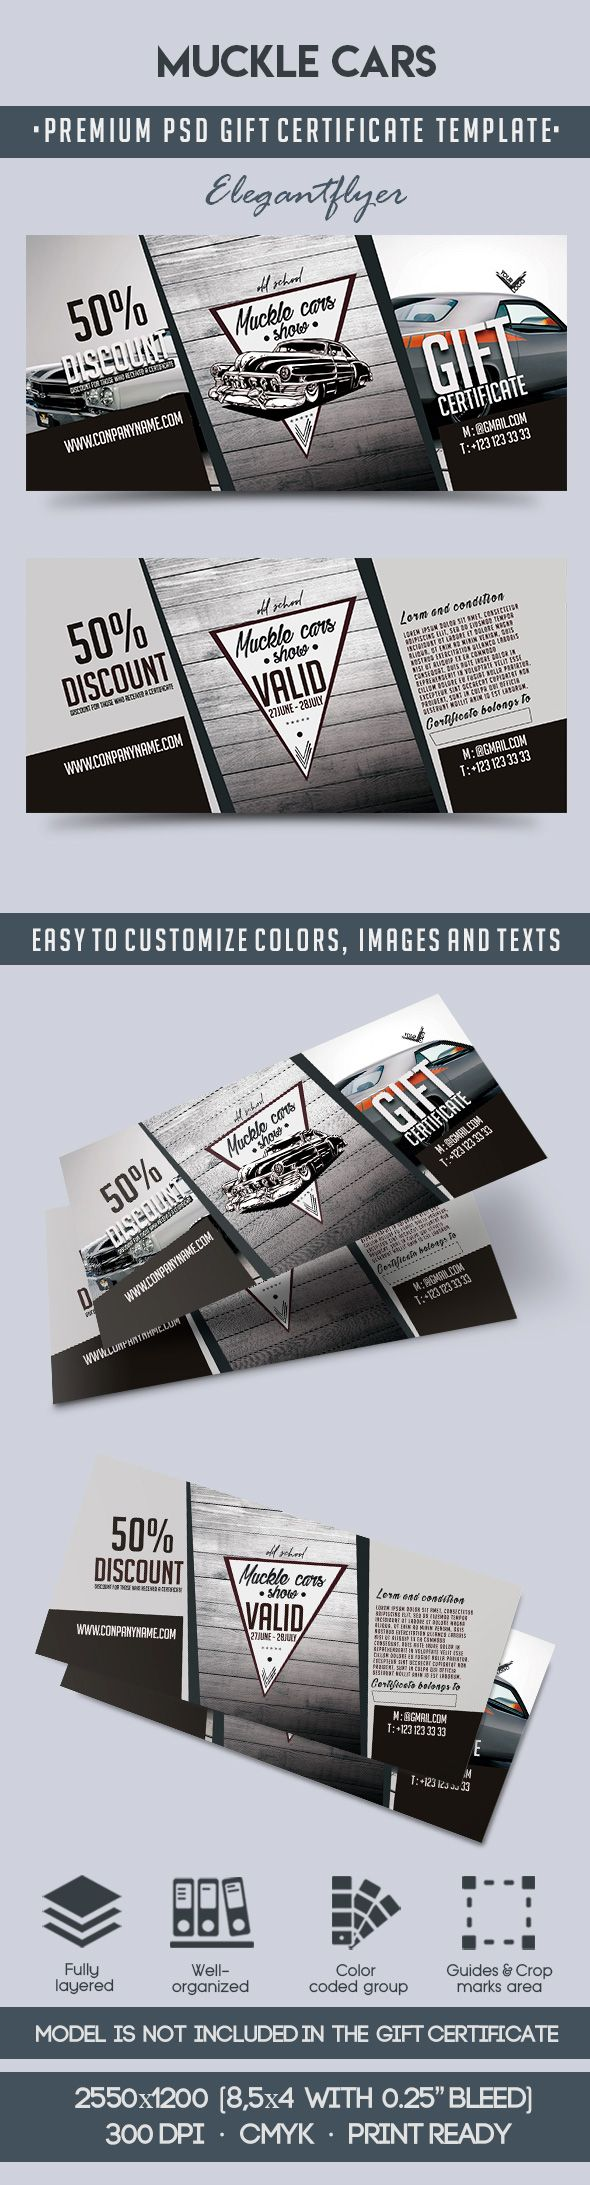 Muckle Cars – Premium Gift Certificate PSD Template